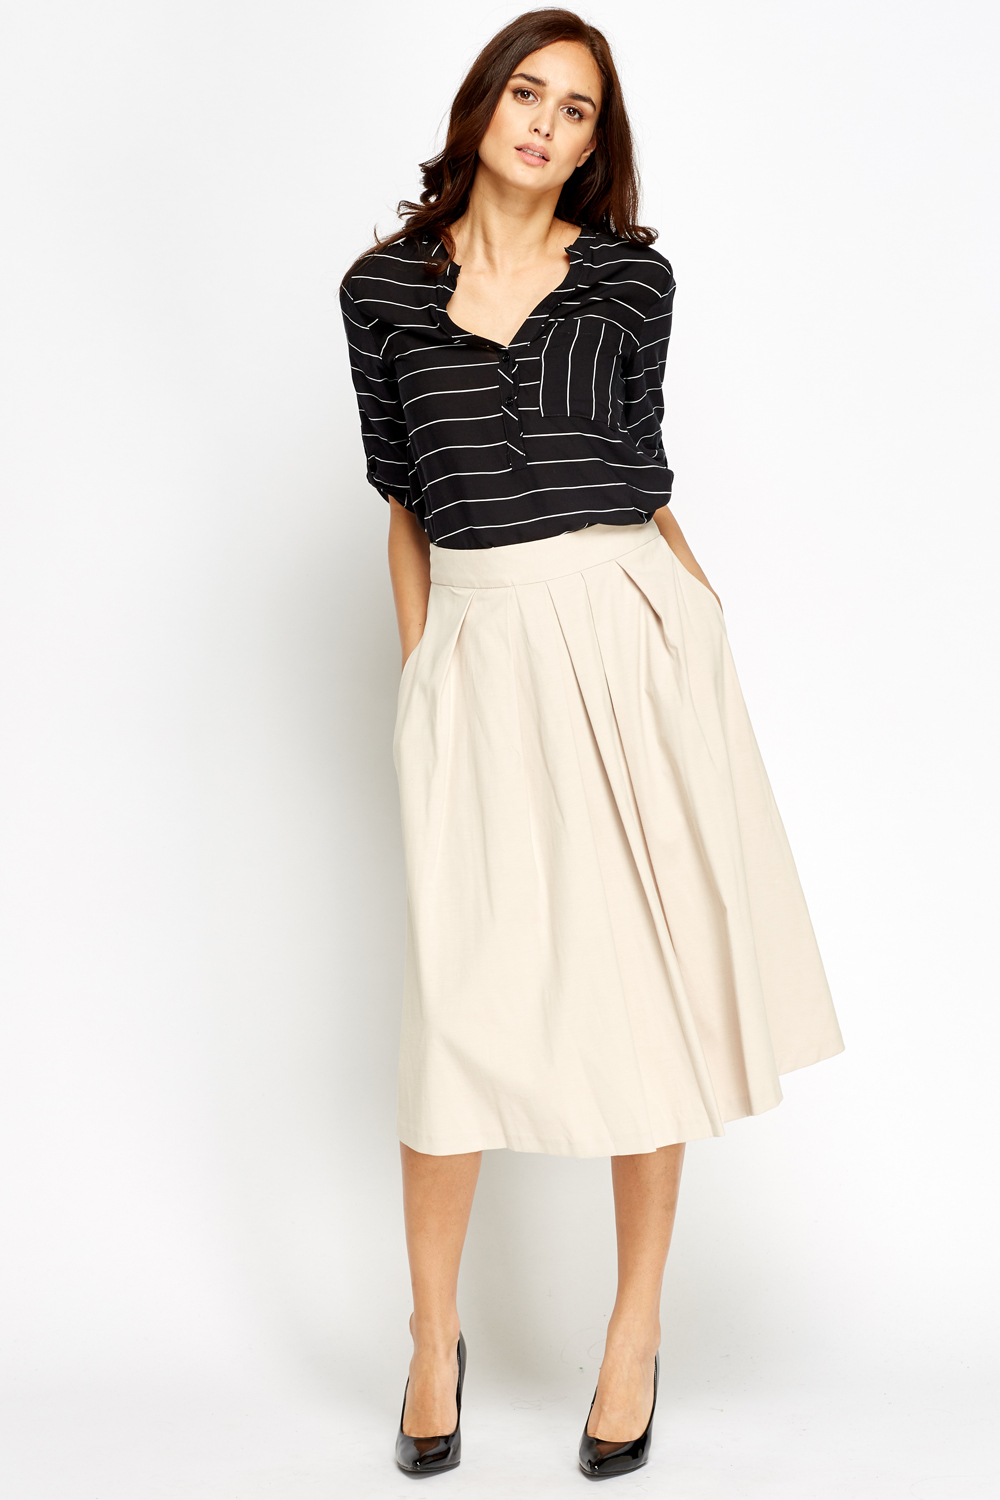 Beige Midi Skirt - Just £5